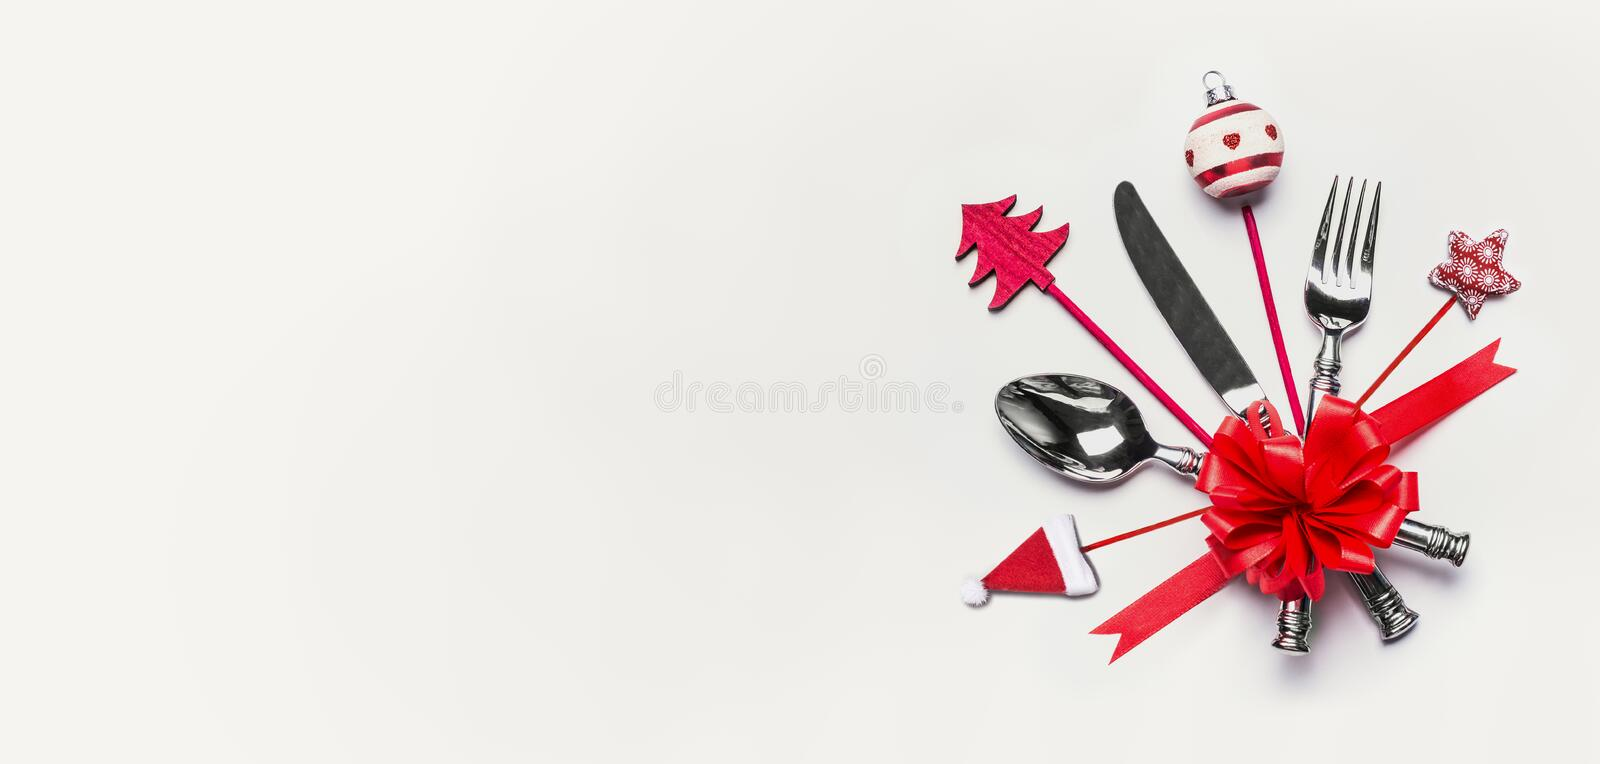 Christmas table place setting with cutlery, red ribbon and decoration with copy space on white desk background, top view, banner. royalty free stock images